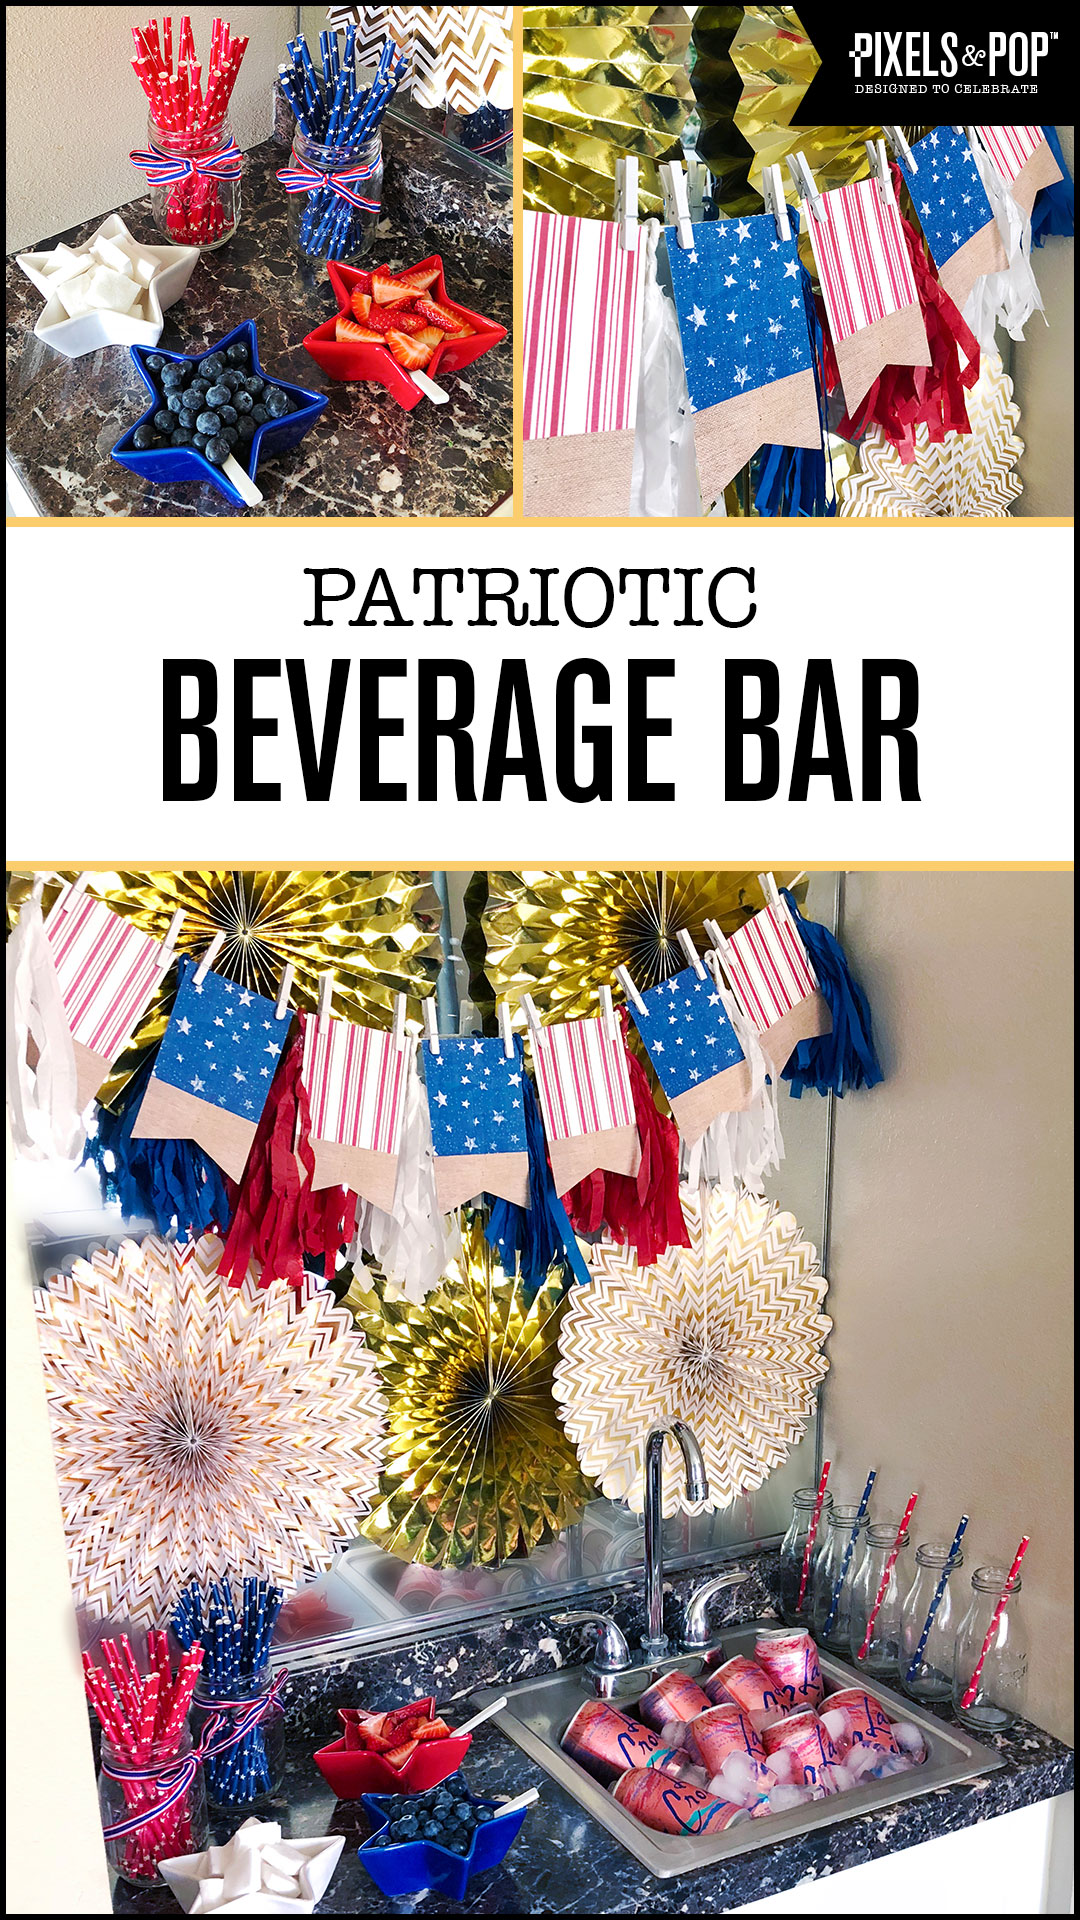 Pin-Friendly_PatrioticBeverageBar.jpg